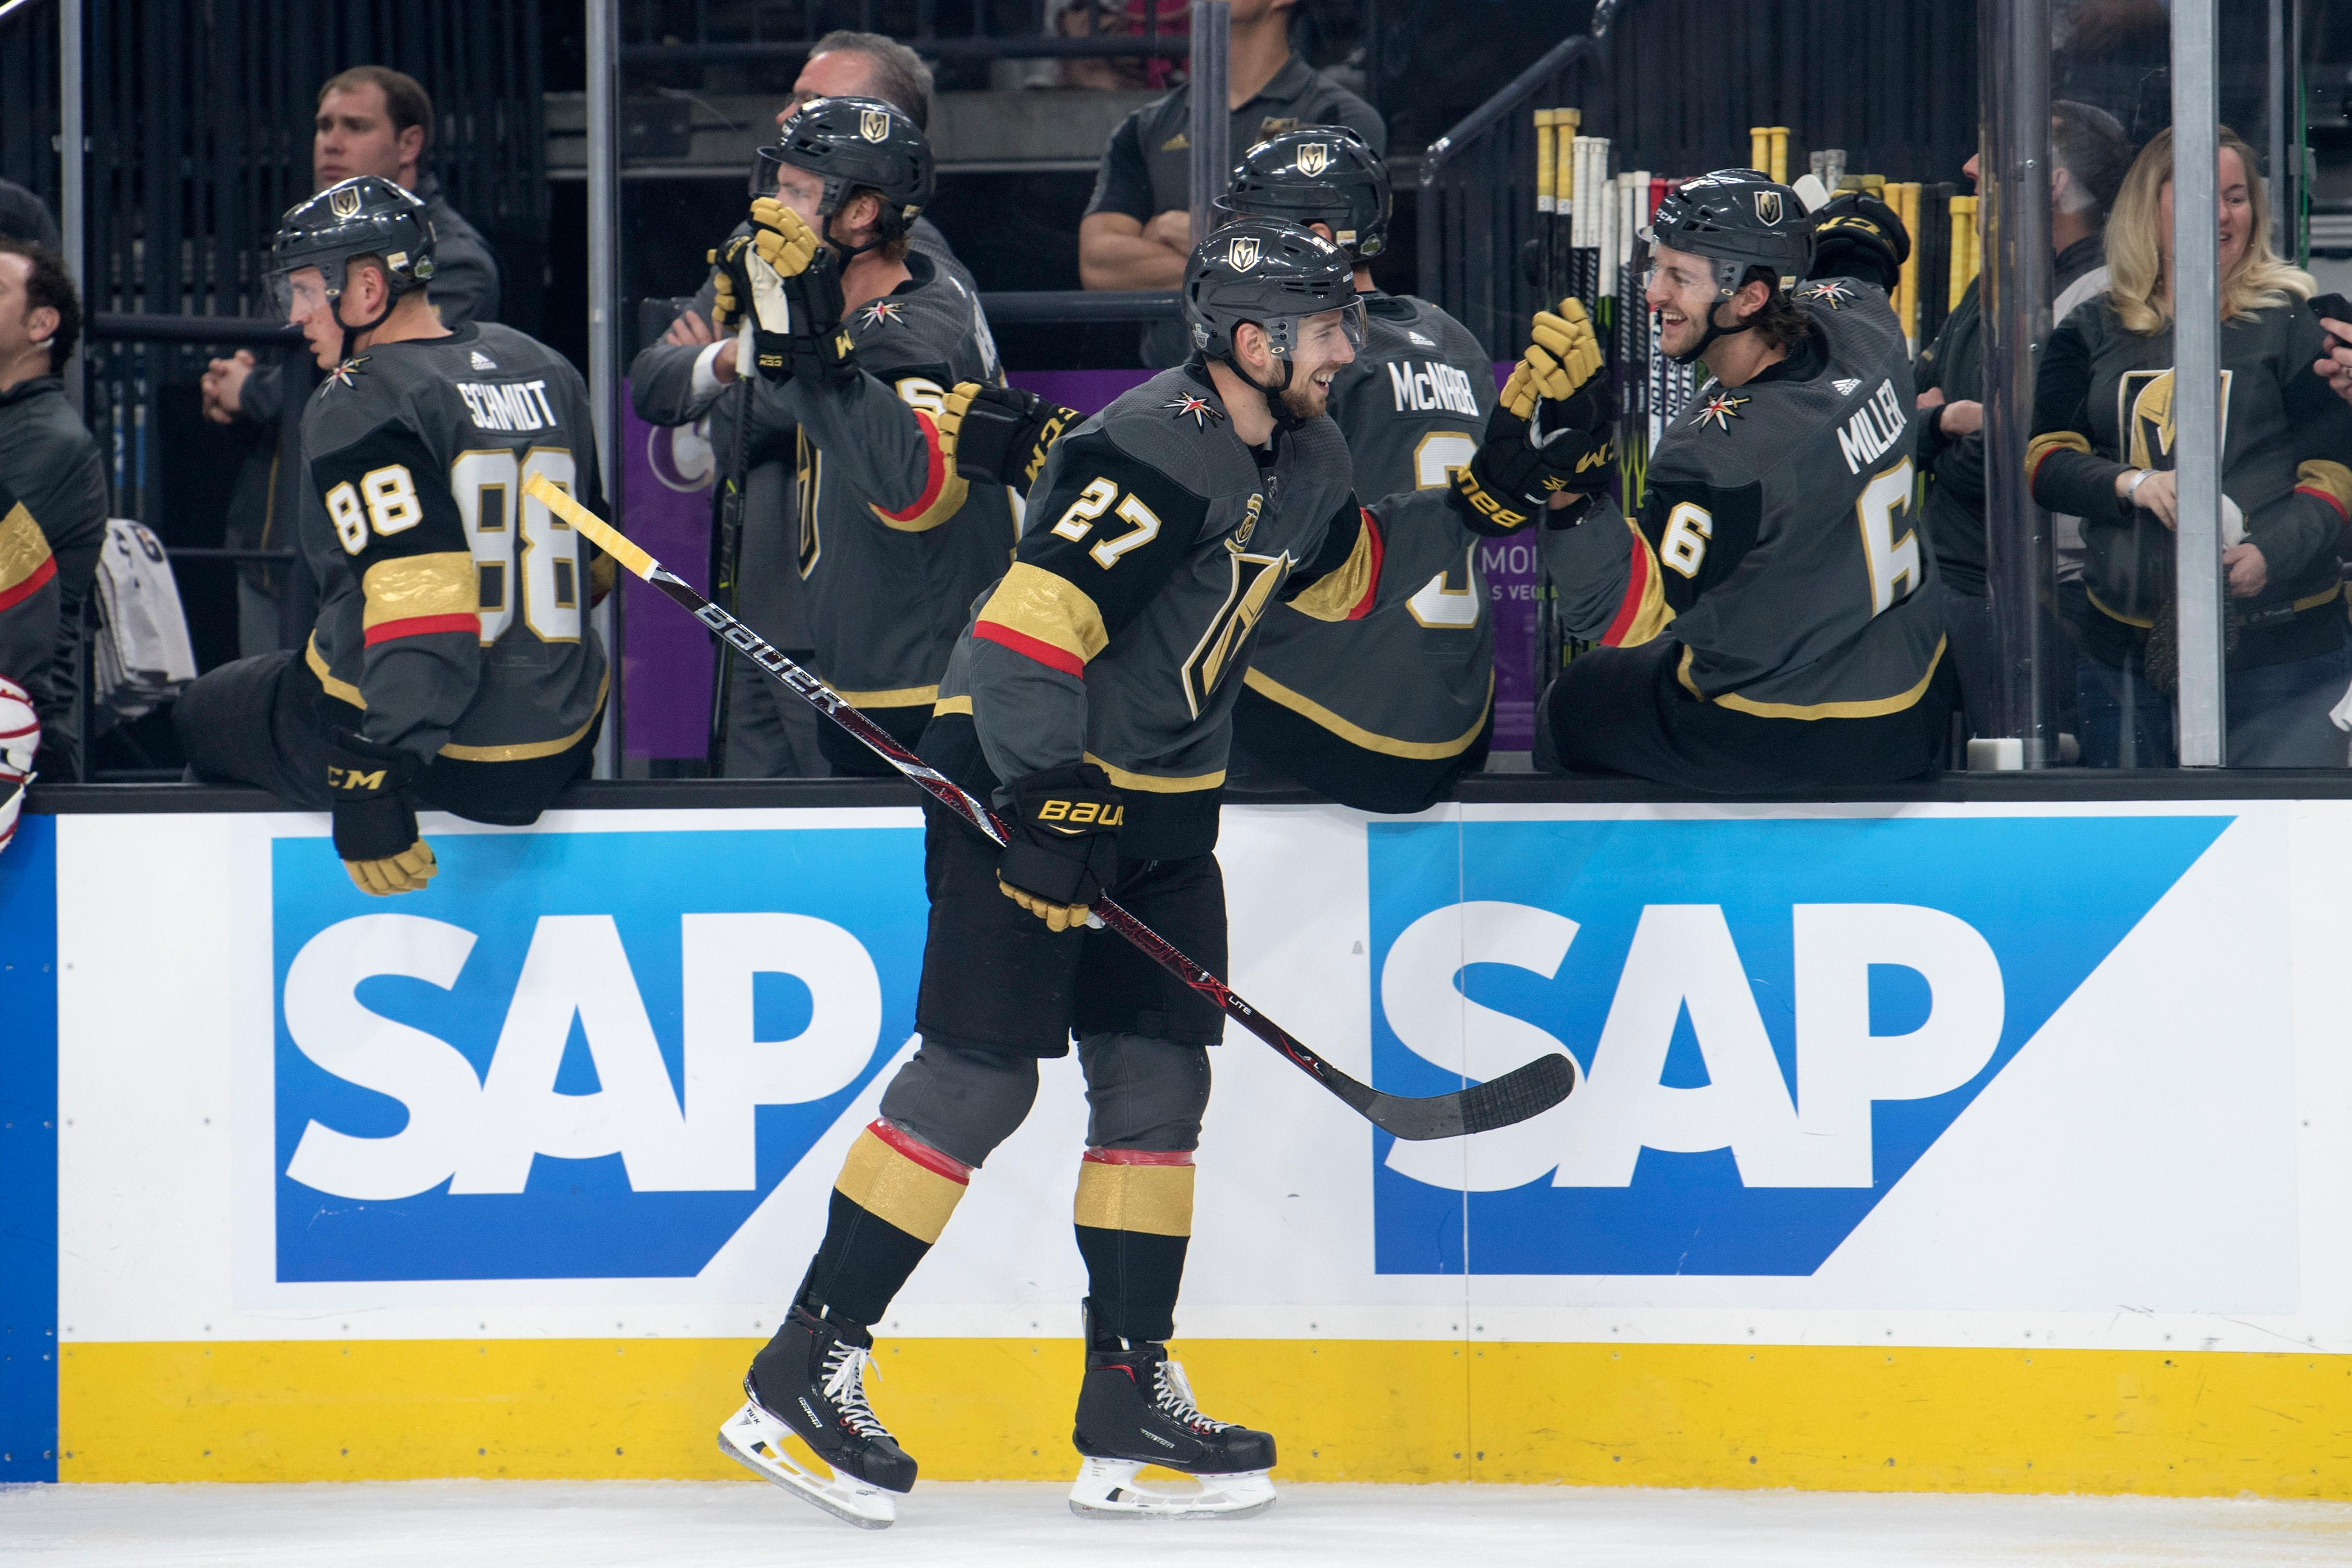 Vegas Golden Knights defenseman Shea Theodore (27) celebrates his goal against the Los Angeles Kings during the first period of Game 1 of their NHL hockey first-round playoff series Wednesday, April 11, 2018 at T-Mobile Arena. The Knights won 1-0. CREDIT: Sam Morris/Las Vegas News Bureau